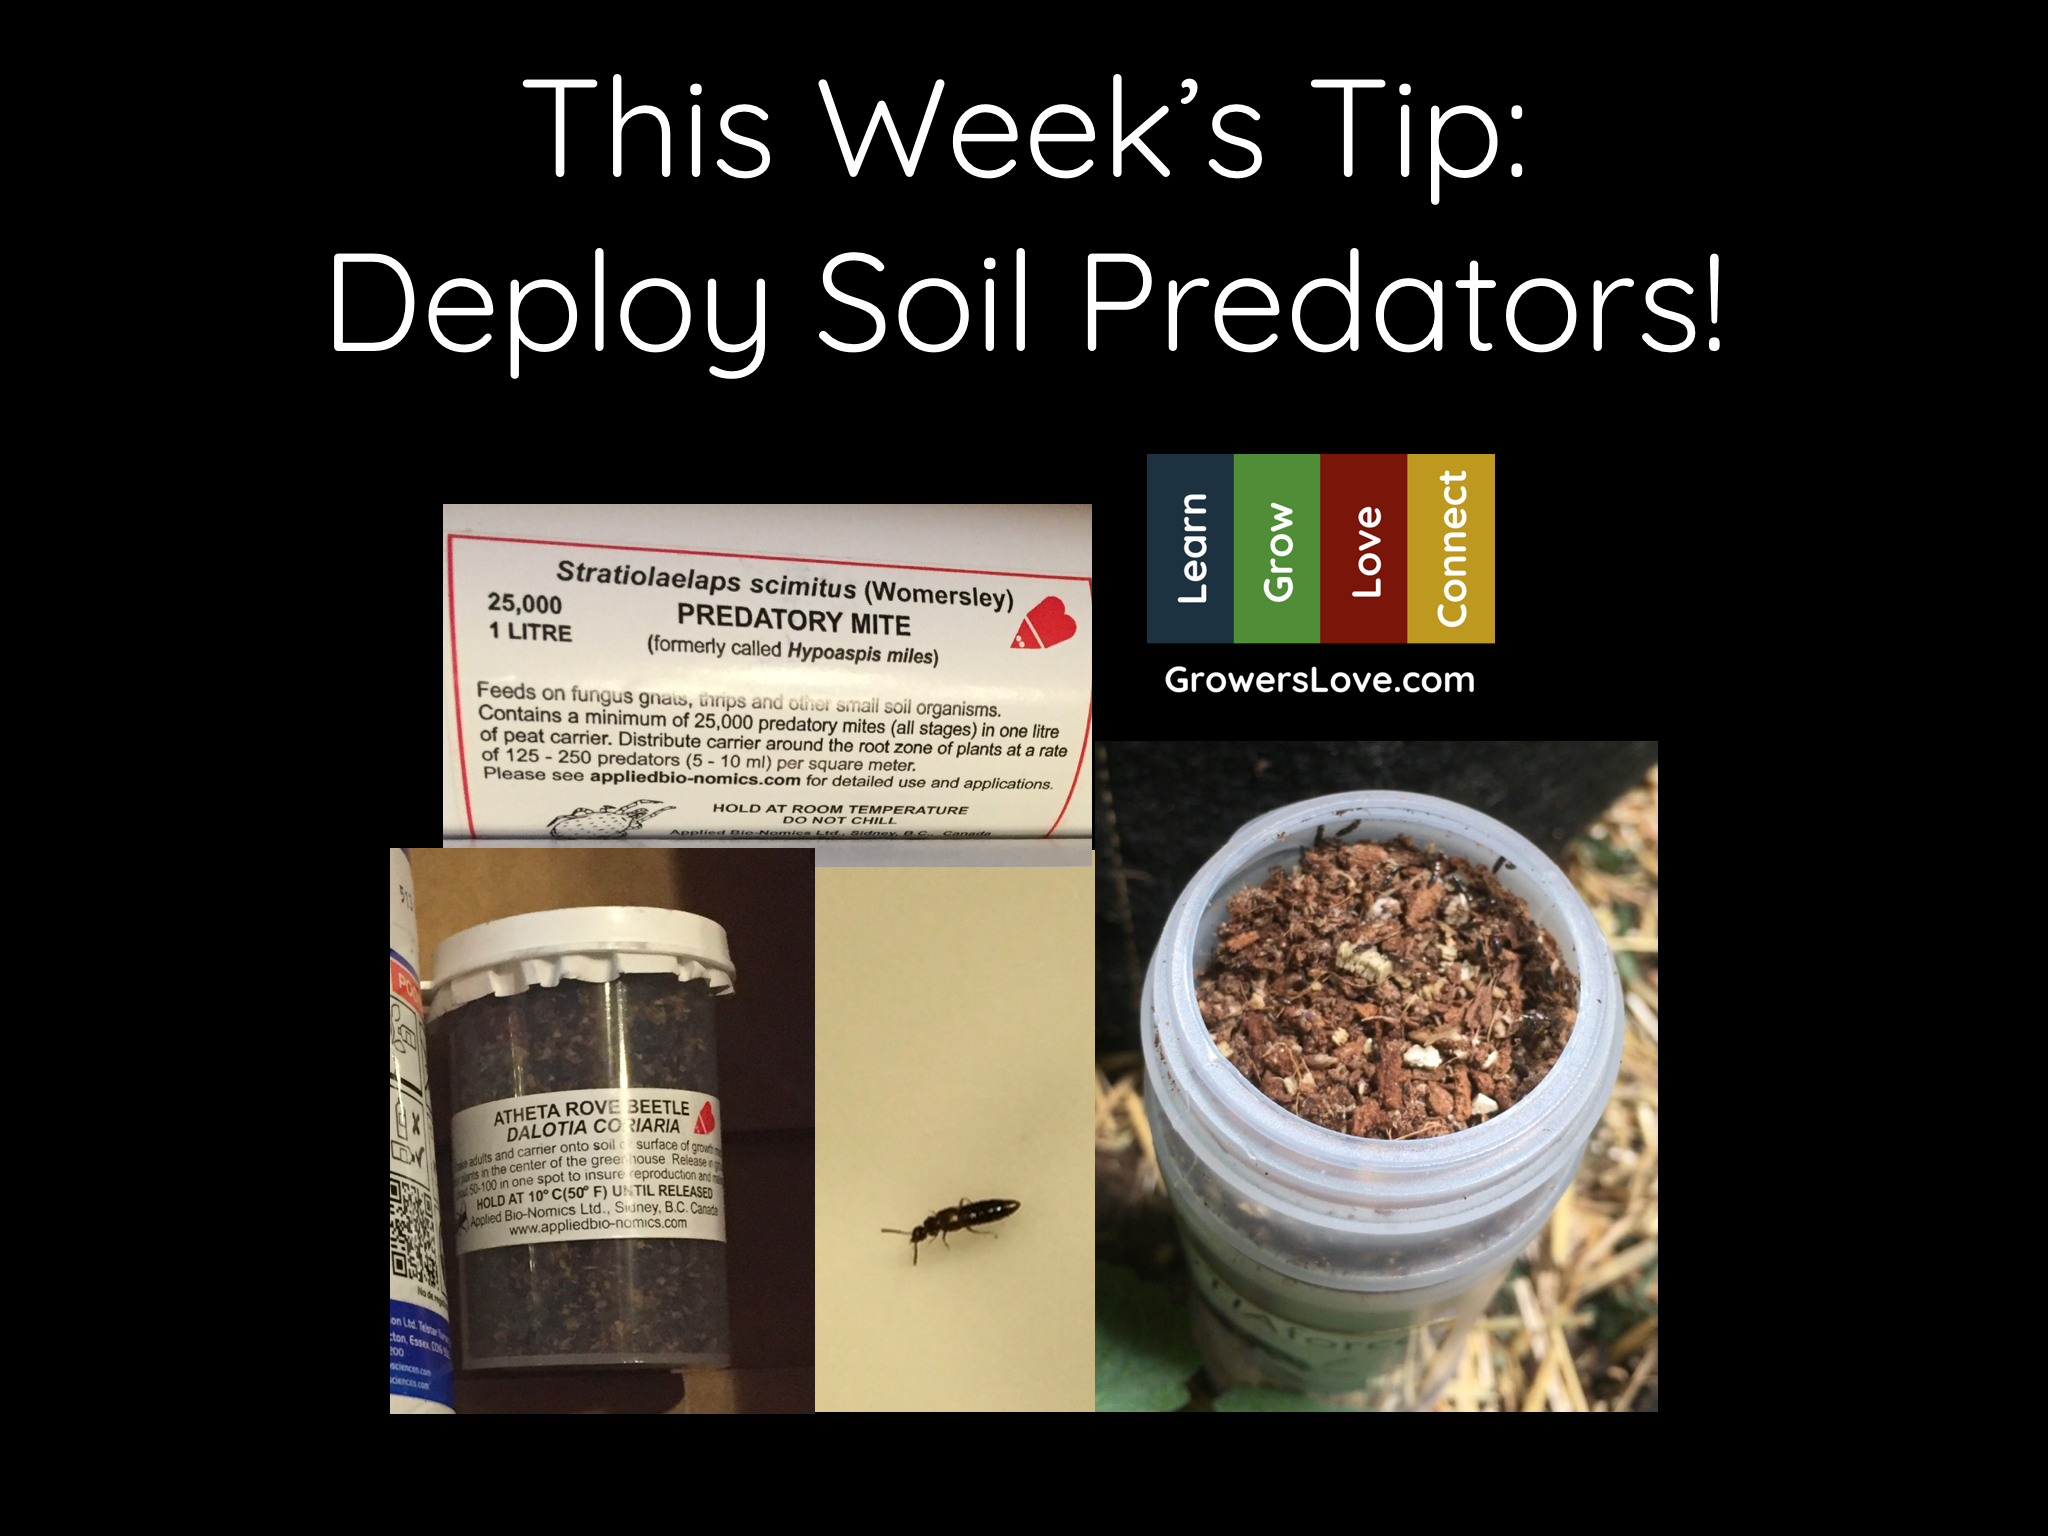 Deploy Soil Predators